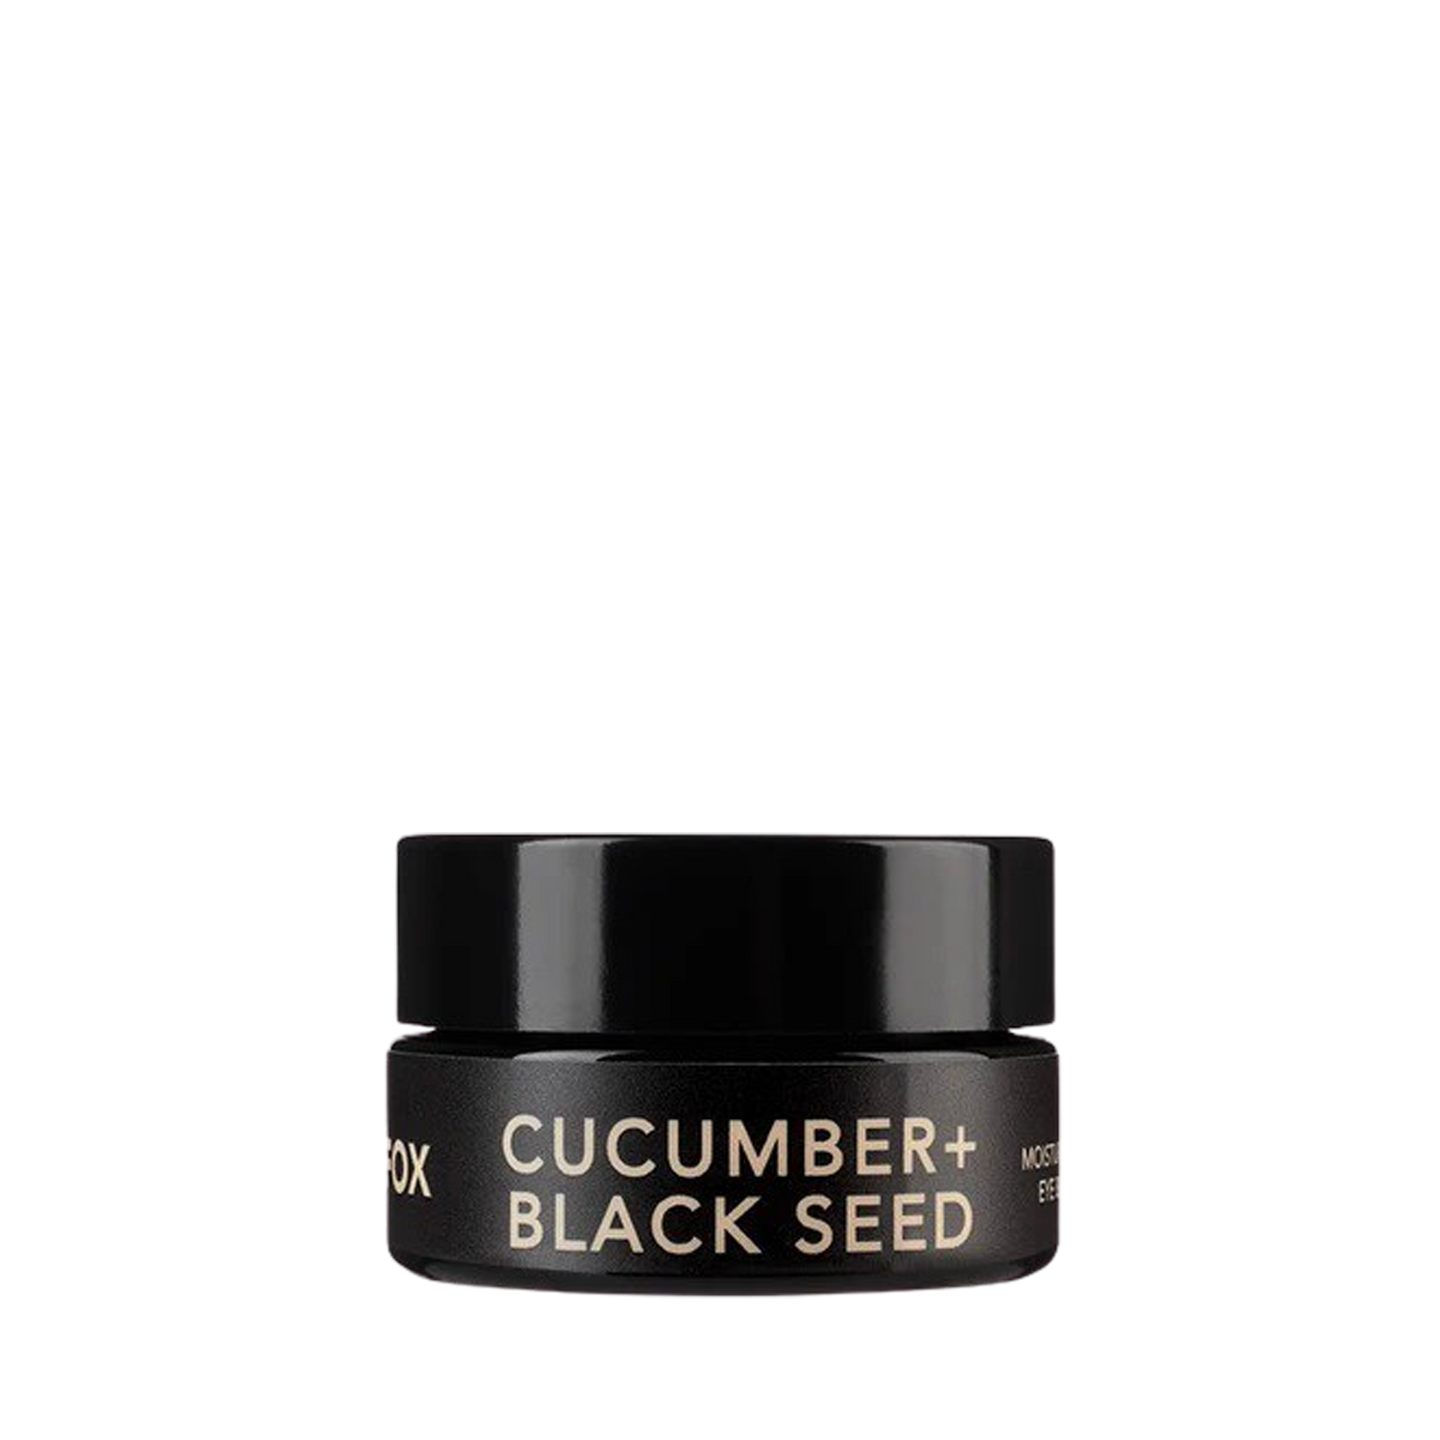 CUCUMBER + BLACK SEED Advanced-C Moisture Surge Eye Butter